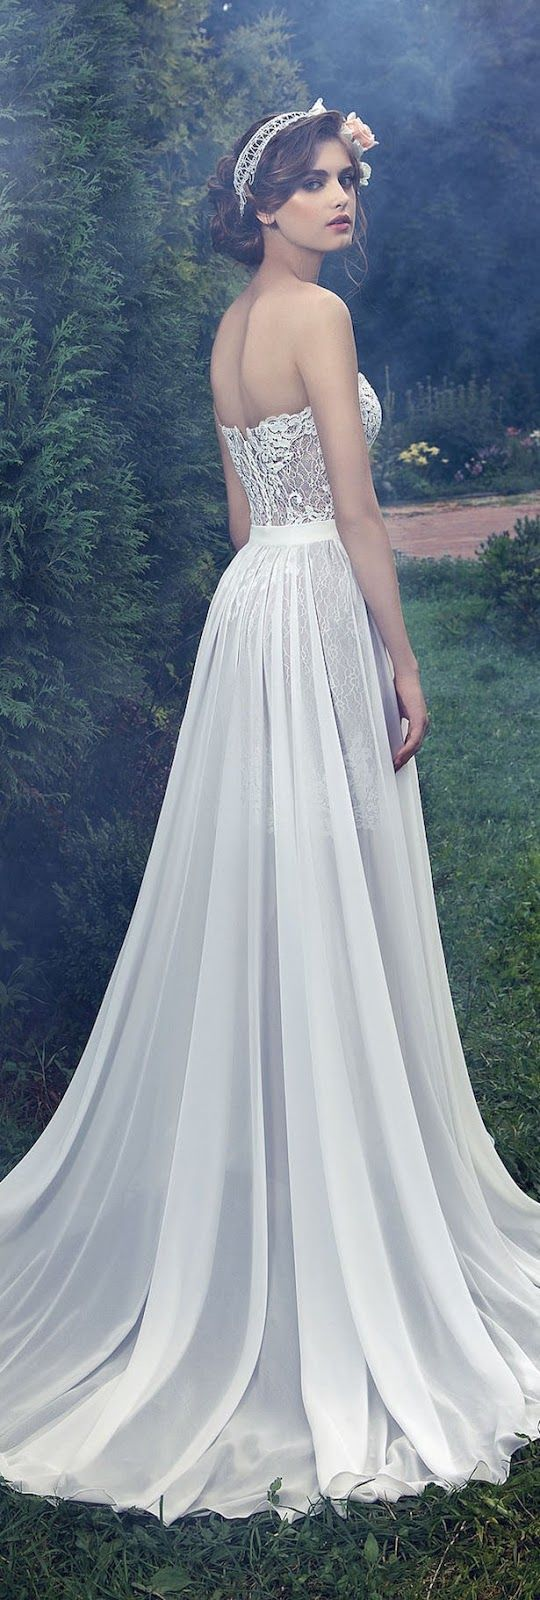 Lovely Vestidos De Novias Sencillos Images - Wedding Ideas ...